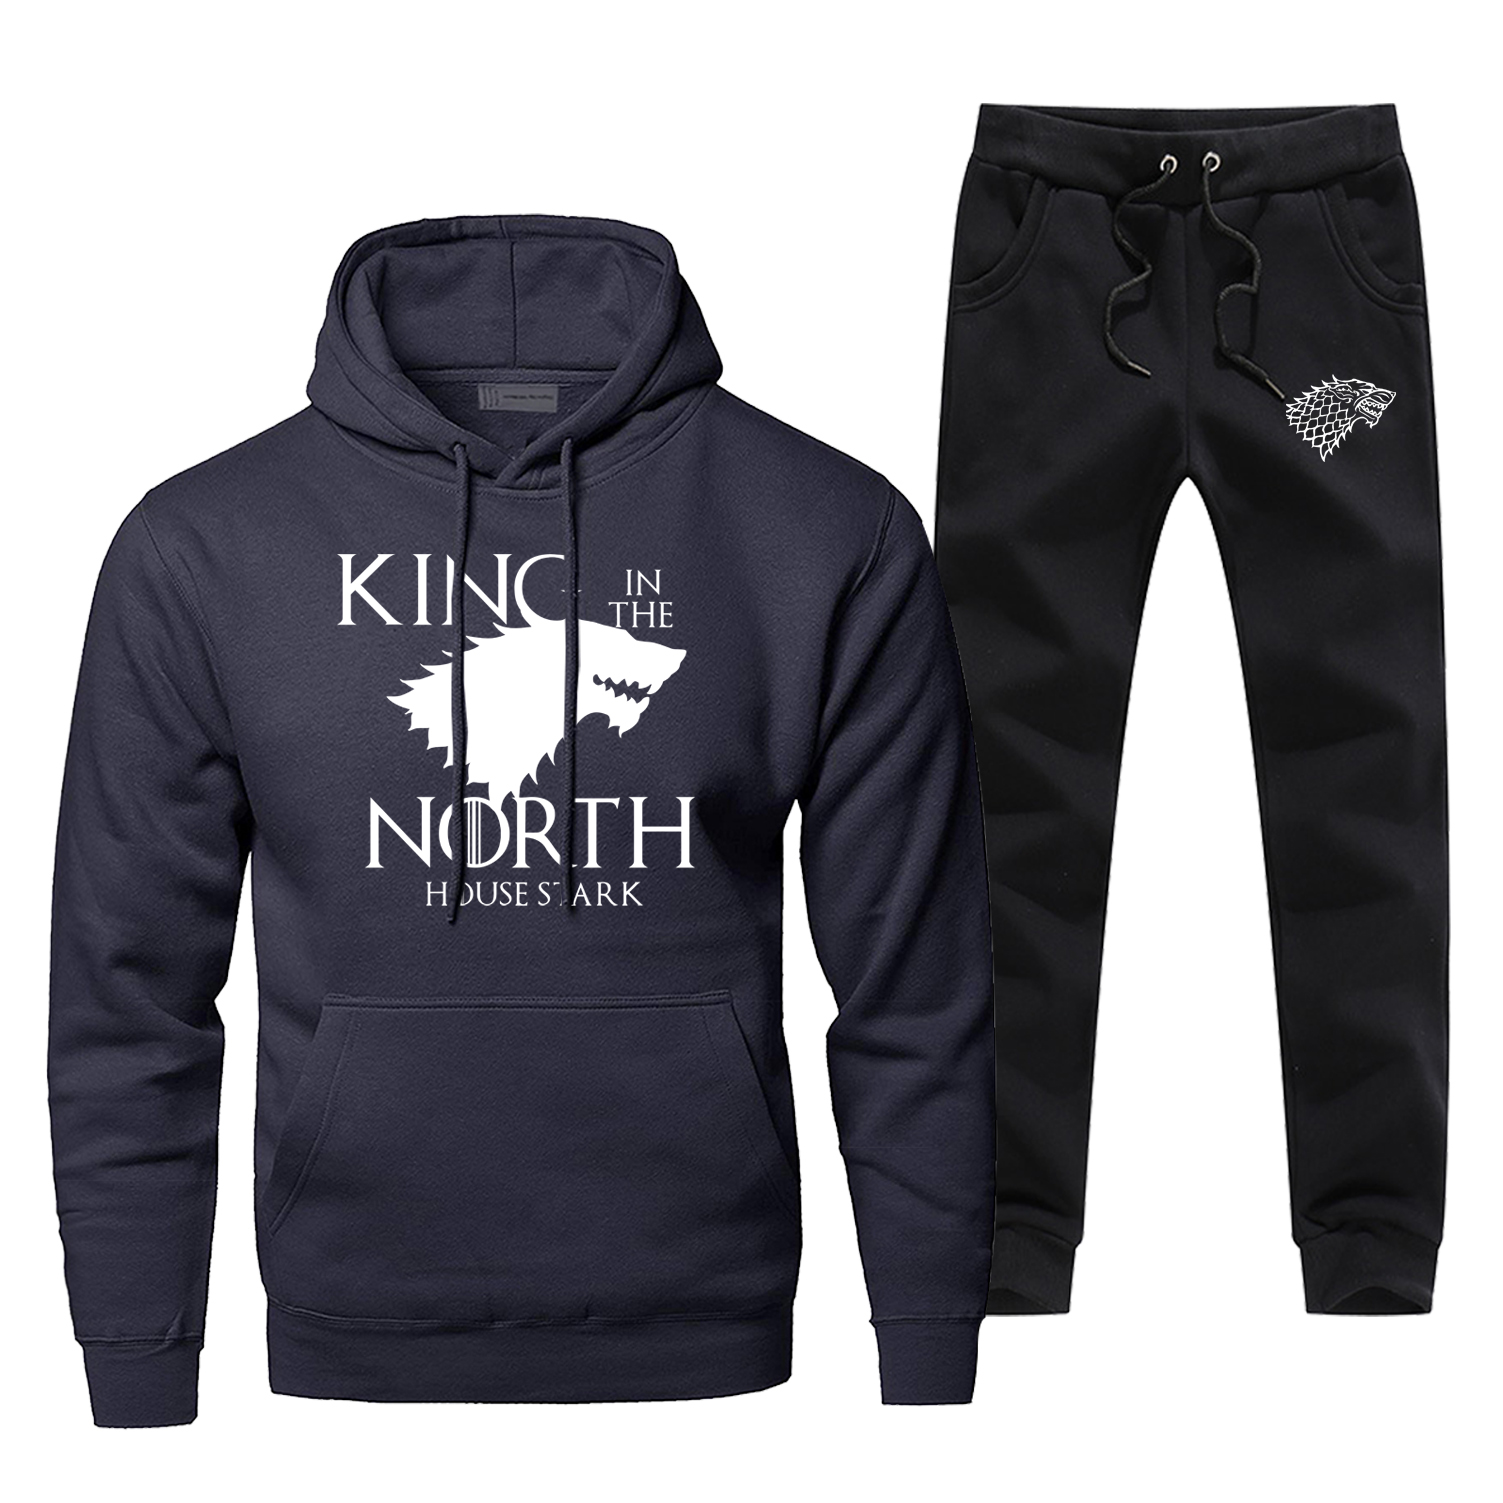 Game Of Thrones Print Hoodies King In The North Men's Sets House Stark TV Show Jon Snow Mens Full Suit Tracksuit Fashion Men Set